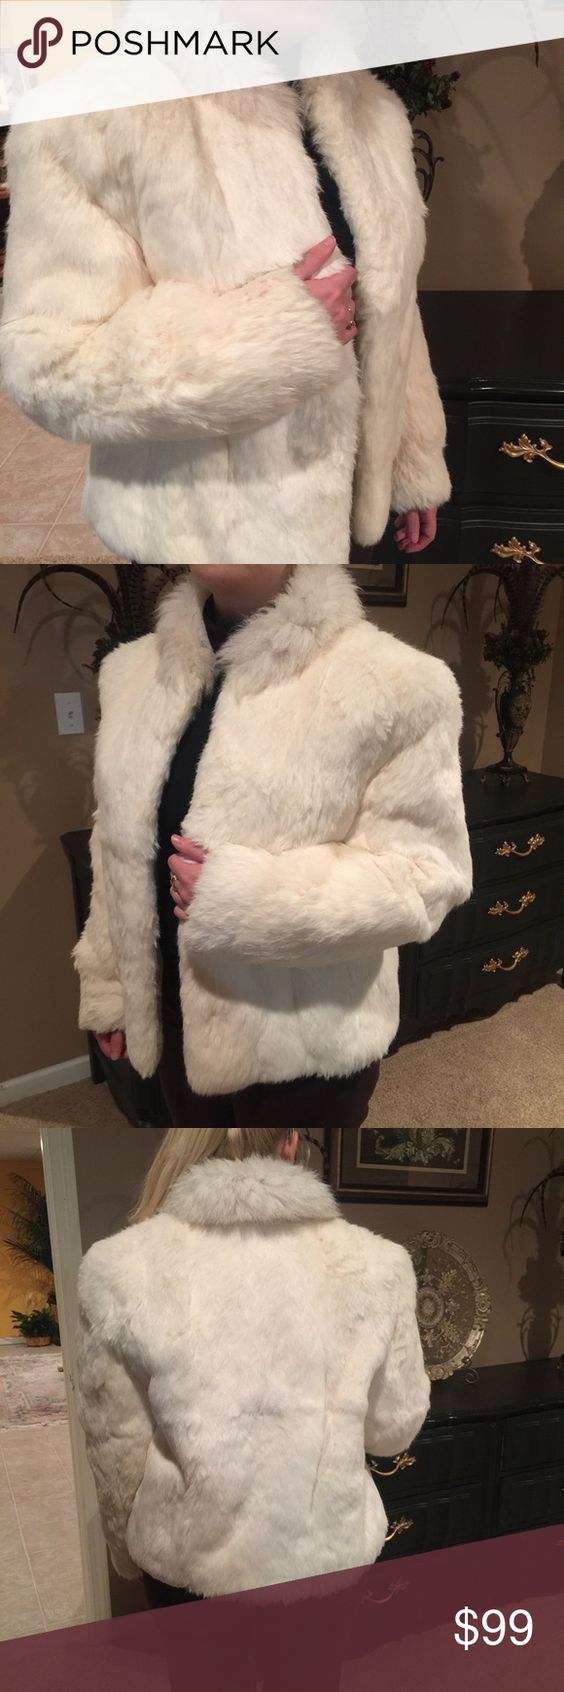 BB Dakota real rabbit fur cream jacket M org. $249 BBDakota beautiful white/cream rabbit fur with Fox collar . Half hip length . No damage, stored professionally, conditioned and ready for winter. Original price$249.00 size M BB Dakota Jackets & Coats